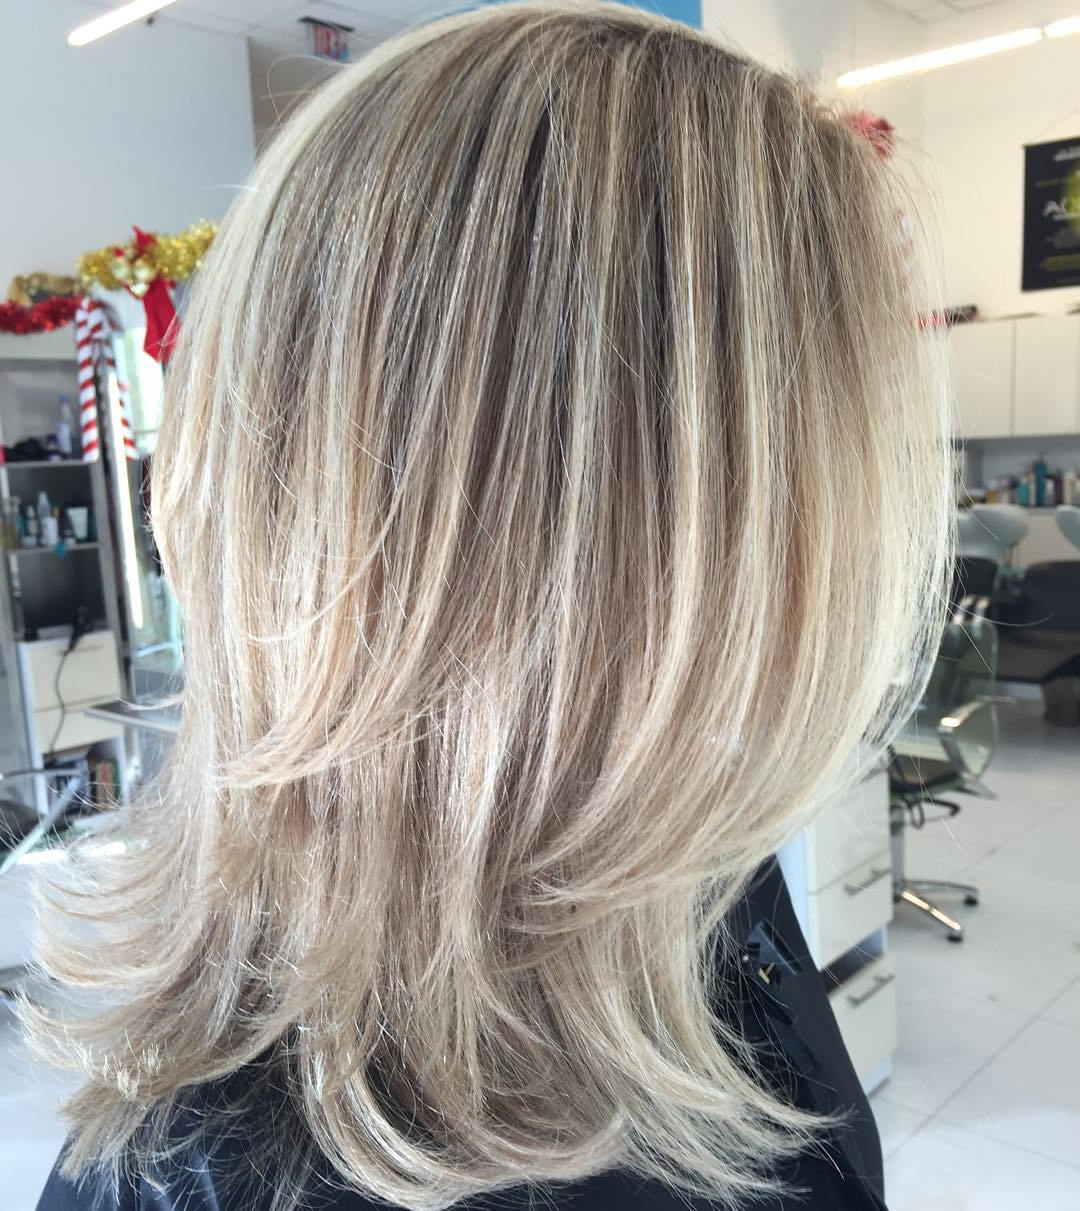 Trendy Lovely Golden Blonde Haircuts With Swoopy Layers Intended For 50 Fabulous Medium Length Layered Hairstyles – Hair Adviser (View 17 of 20)